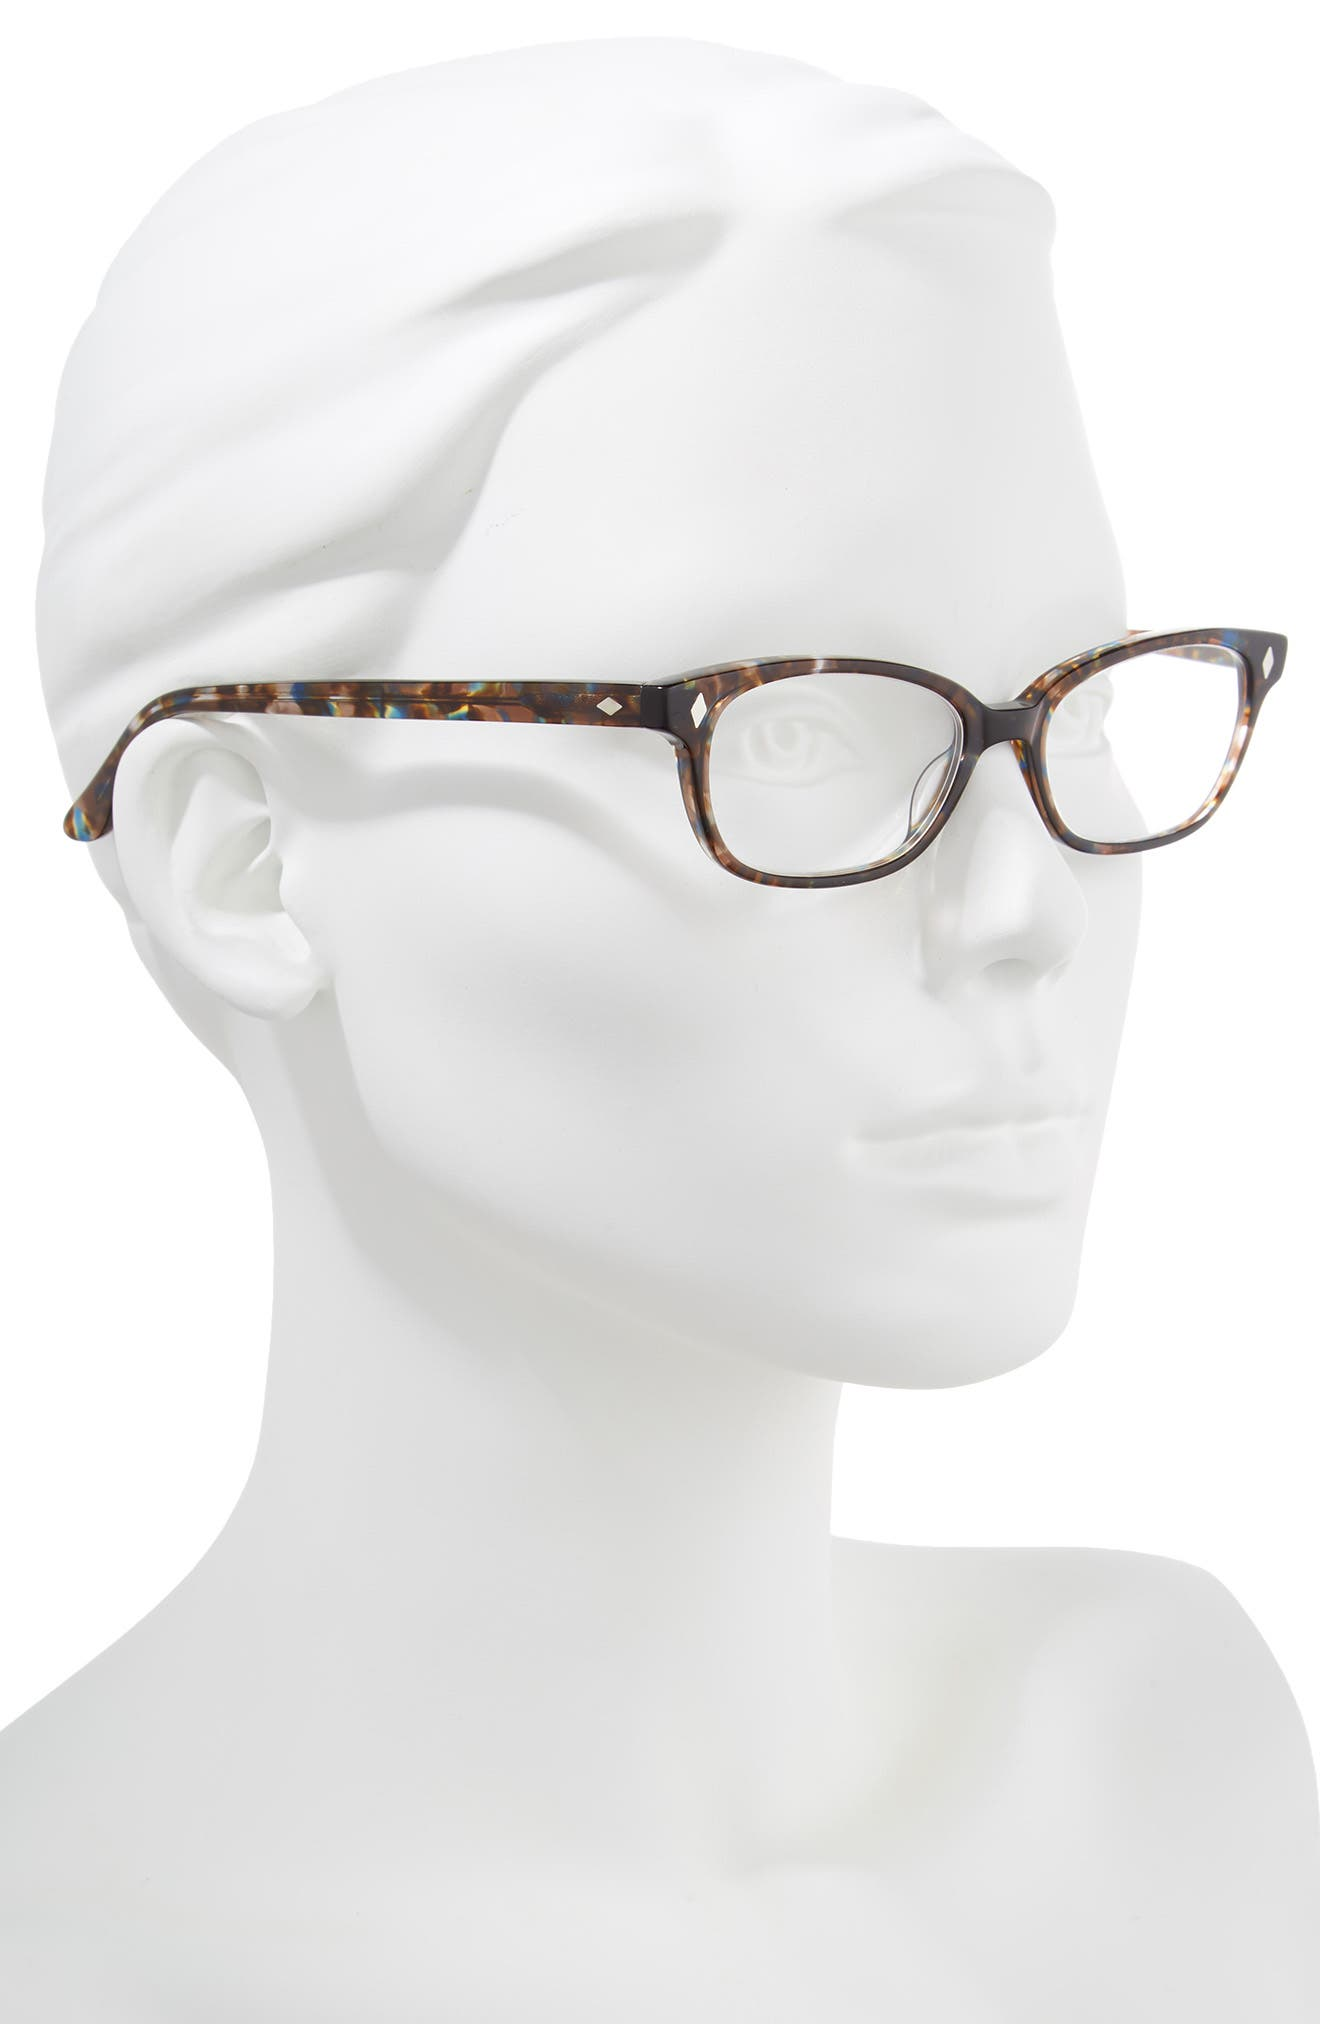 'Cyd' 50mm Reading Glasses,                             Alternate thumbnail 5, color,